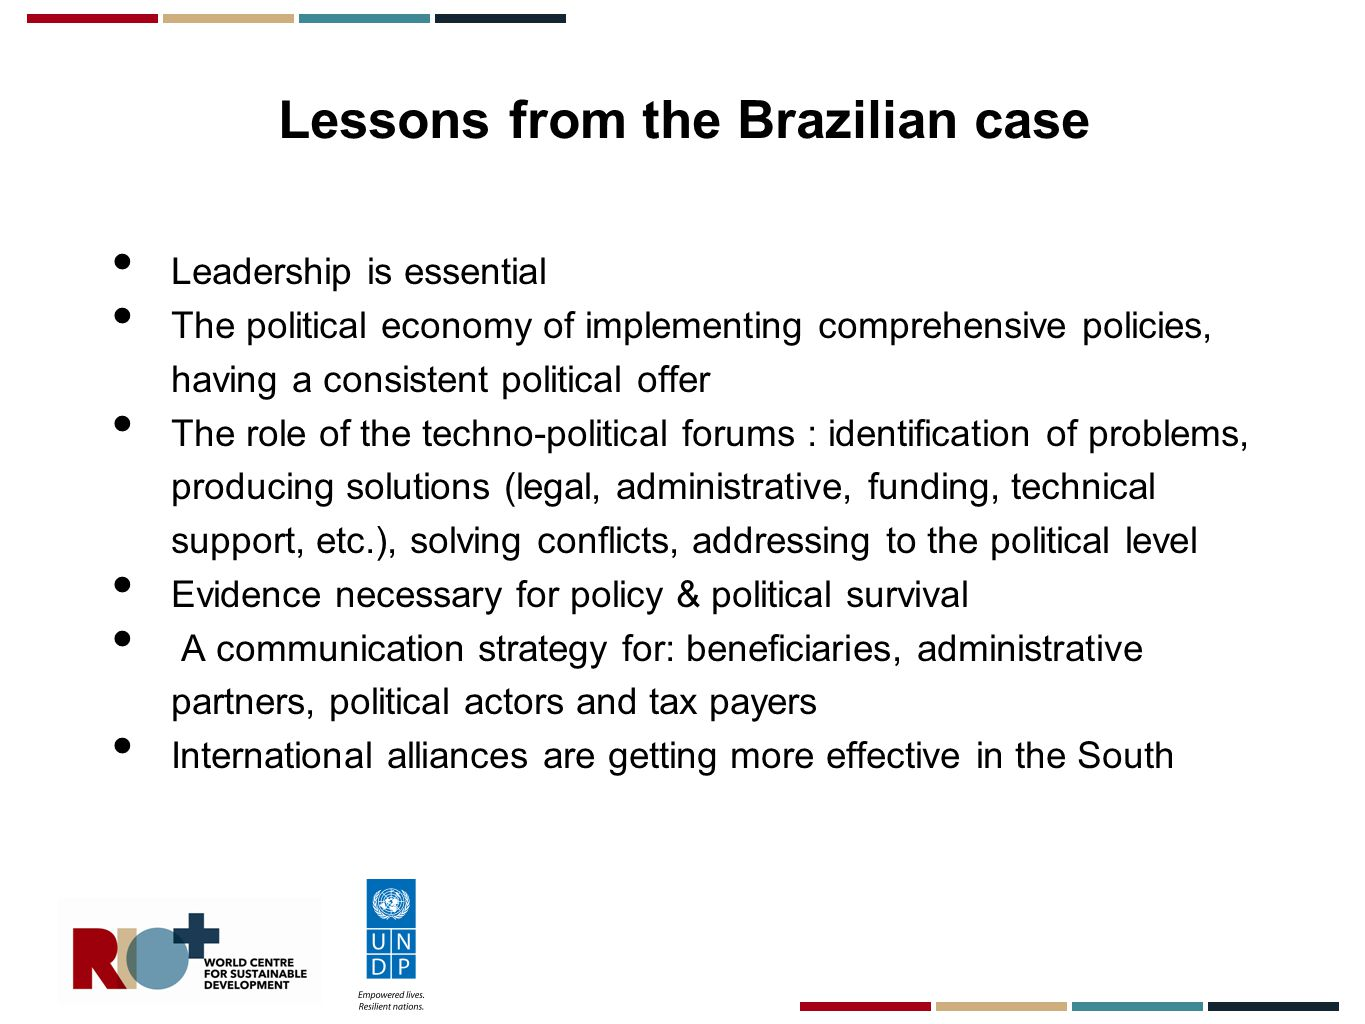 Lessons from the Brazilian case Leadership is essential The political economy of implementing comprehensive policies, having a consistent political offer The role of the techno-political forums : identification of problems, producing solutions (legal, administrative, funding, technical support, etc.), solving conflicts, addressing to the political level Evidence necessary for policy & political survival A communication strategy for: beneficiaries, administrative partners, political actors and tax payers International alliances are getting more effective in the South